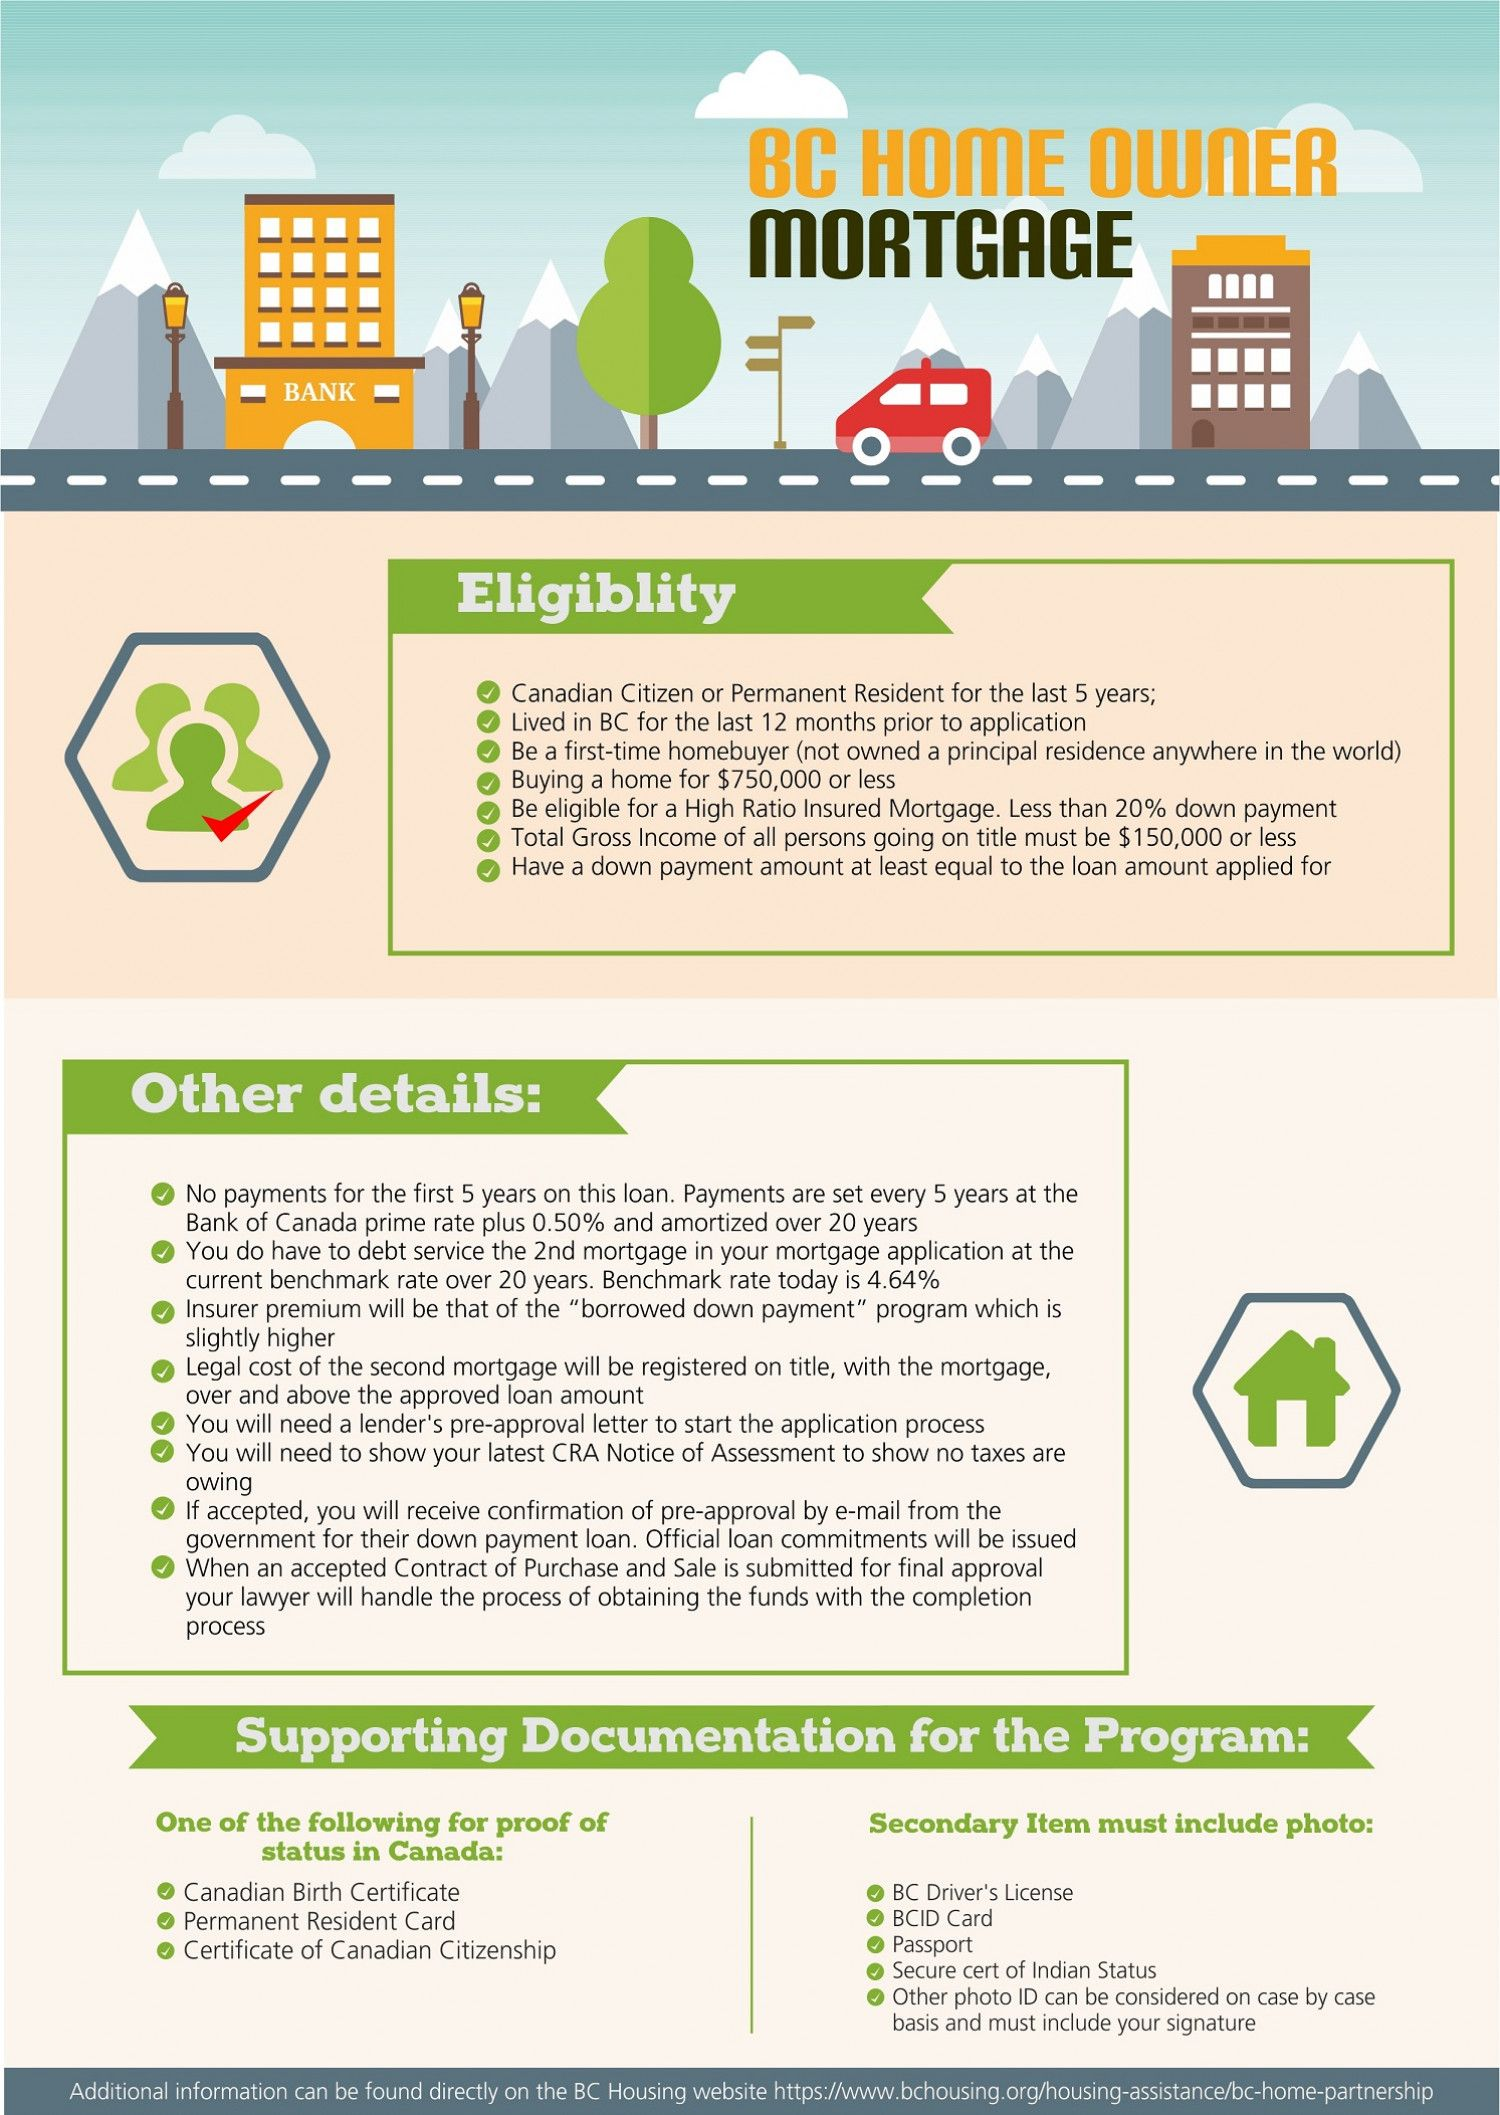 BC Home Owner Mortgage Infographic